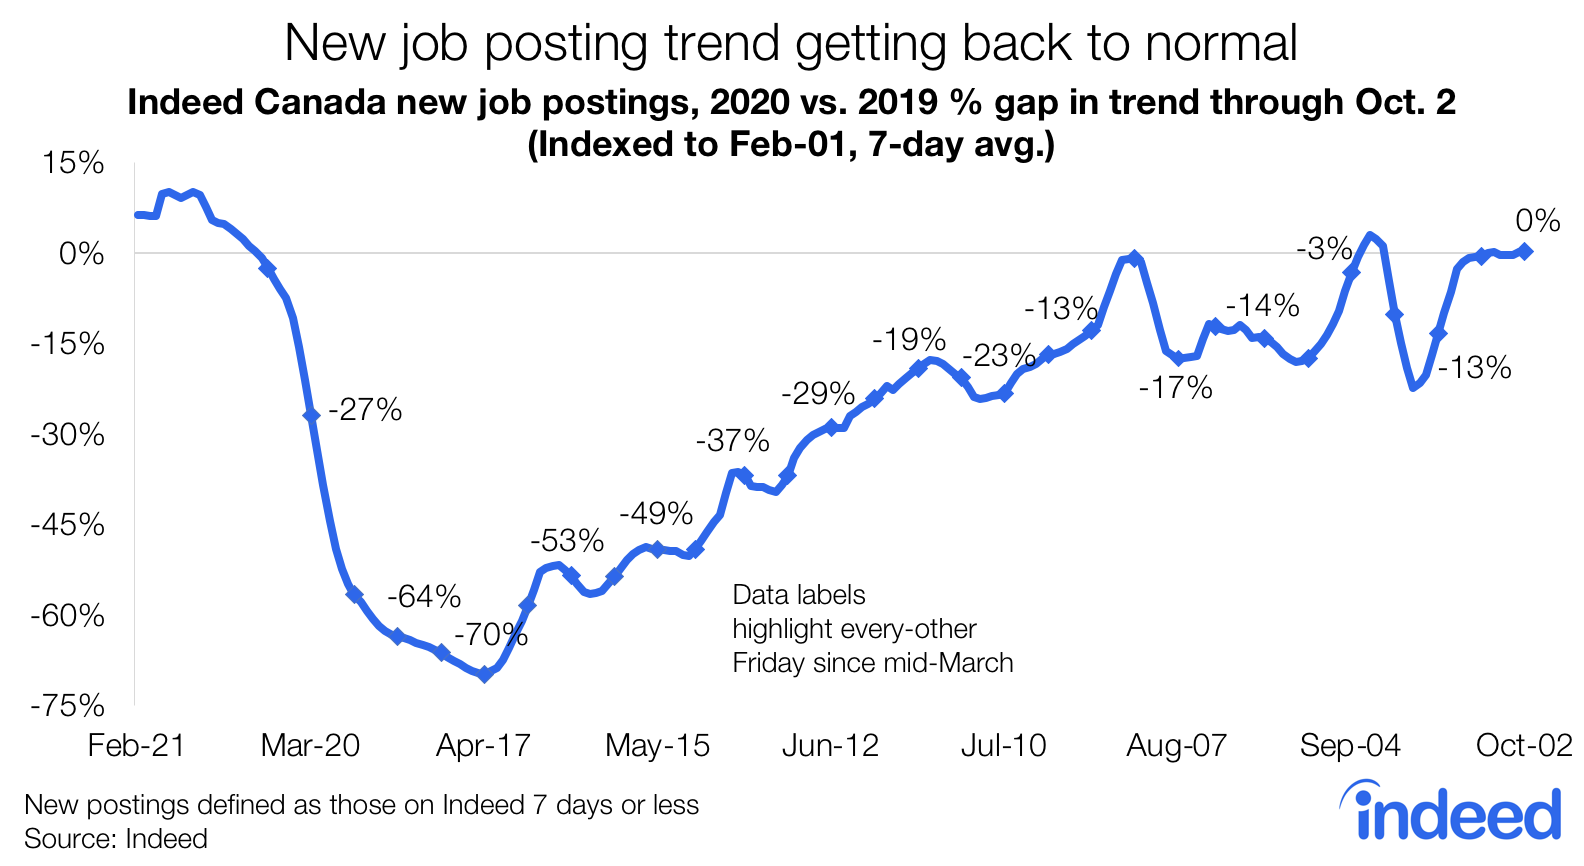 Line graph showing the new job posting trend getting back to normal since pandemic